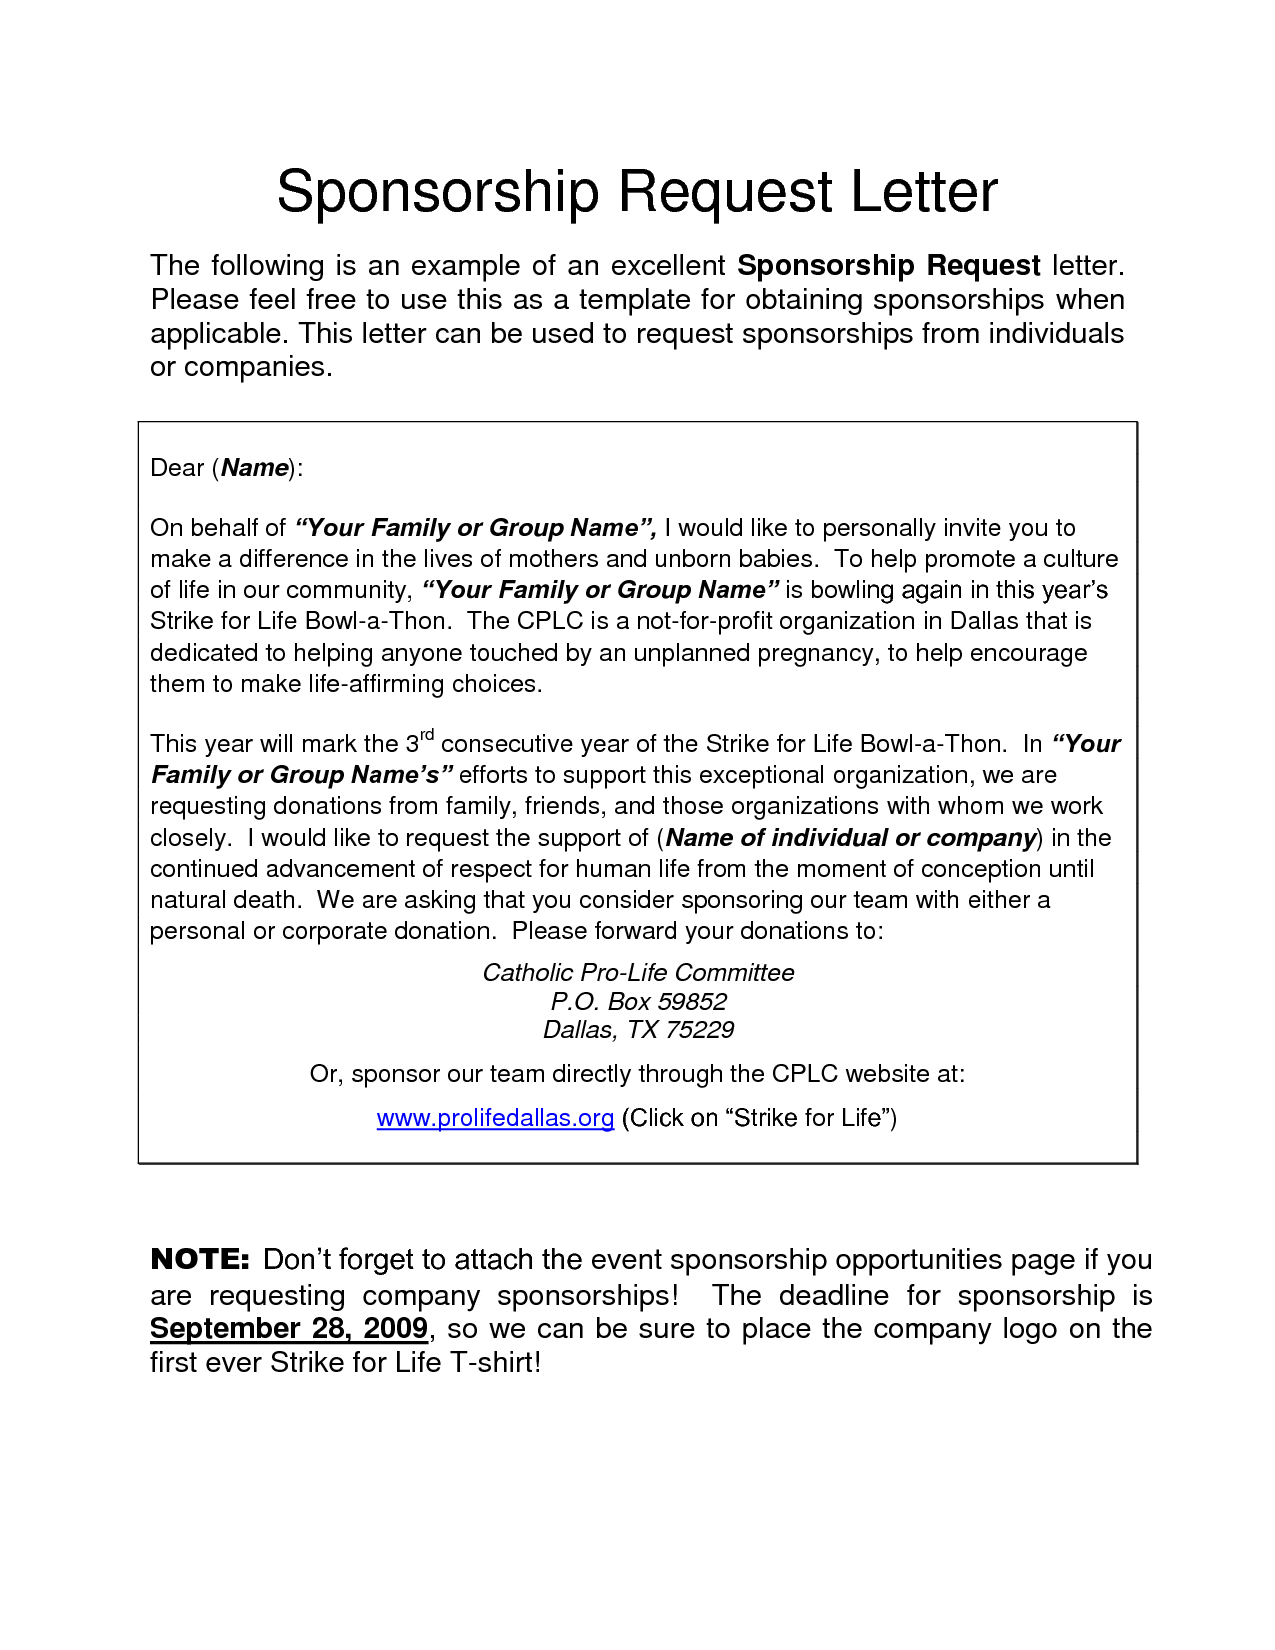 Corporate Sponsorship Request Letter Charity Donation Free Sample Sponsorship  Letter Sample Mple Request Letters Requesting Scholarship  Free Sponsorship Letter